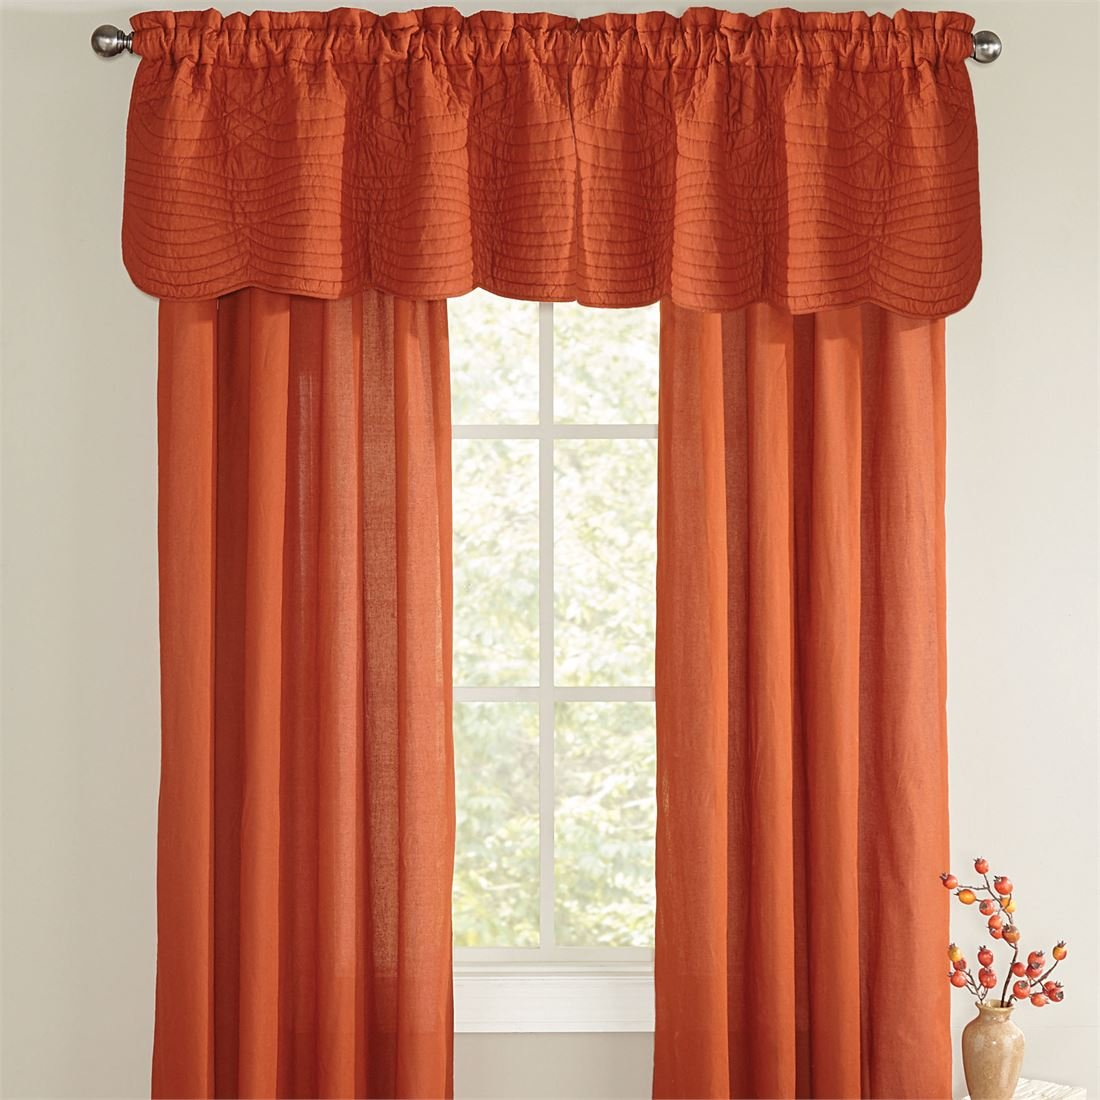 BrylaneHome Florence Rod Pocket Panel, 42 In X 84 In, Pair (Spice,0)